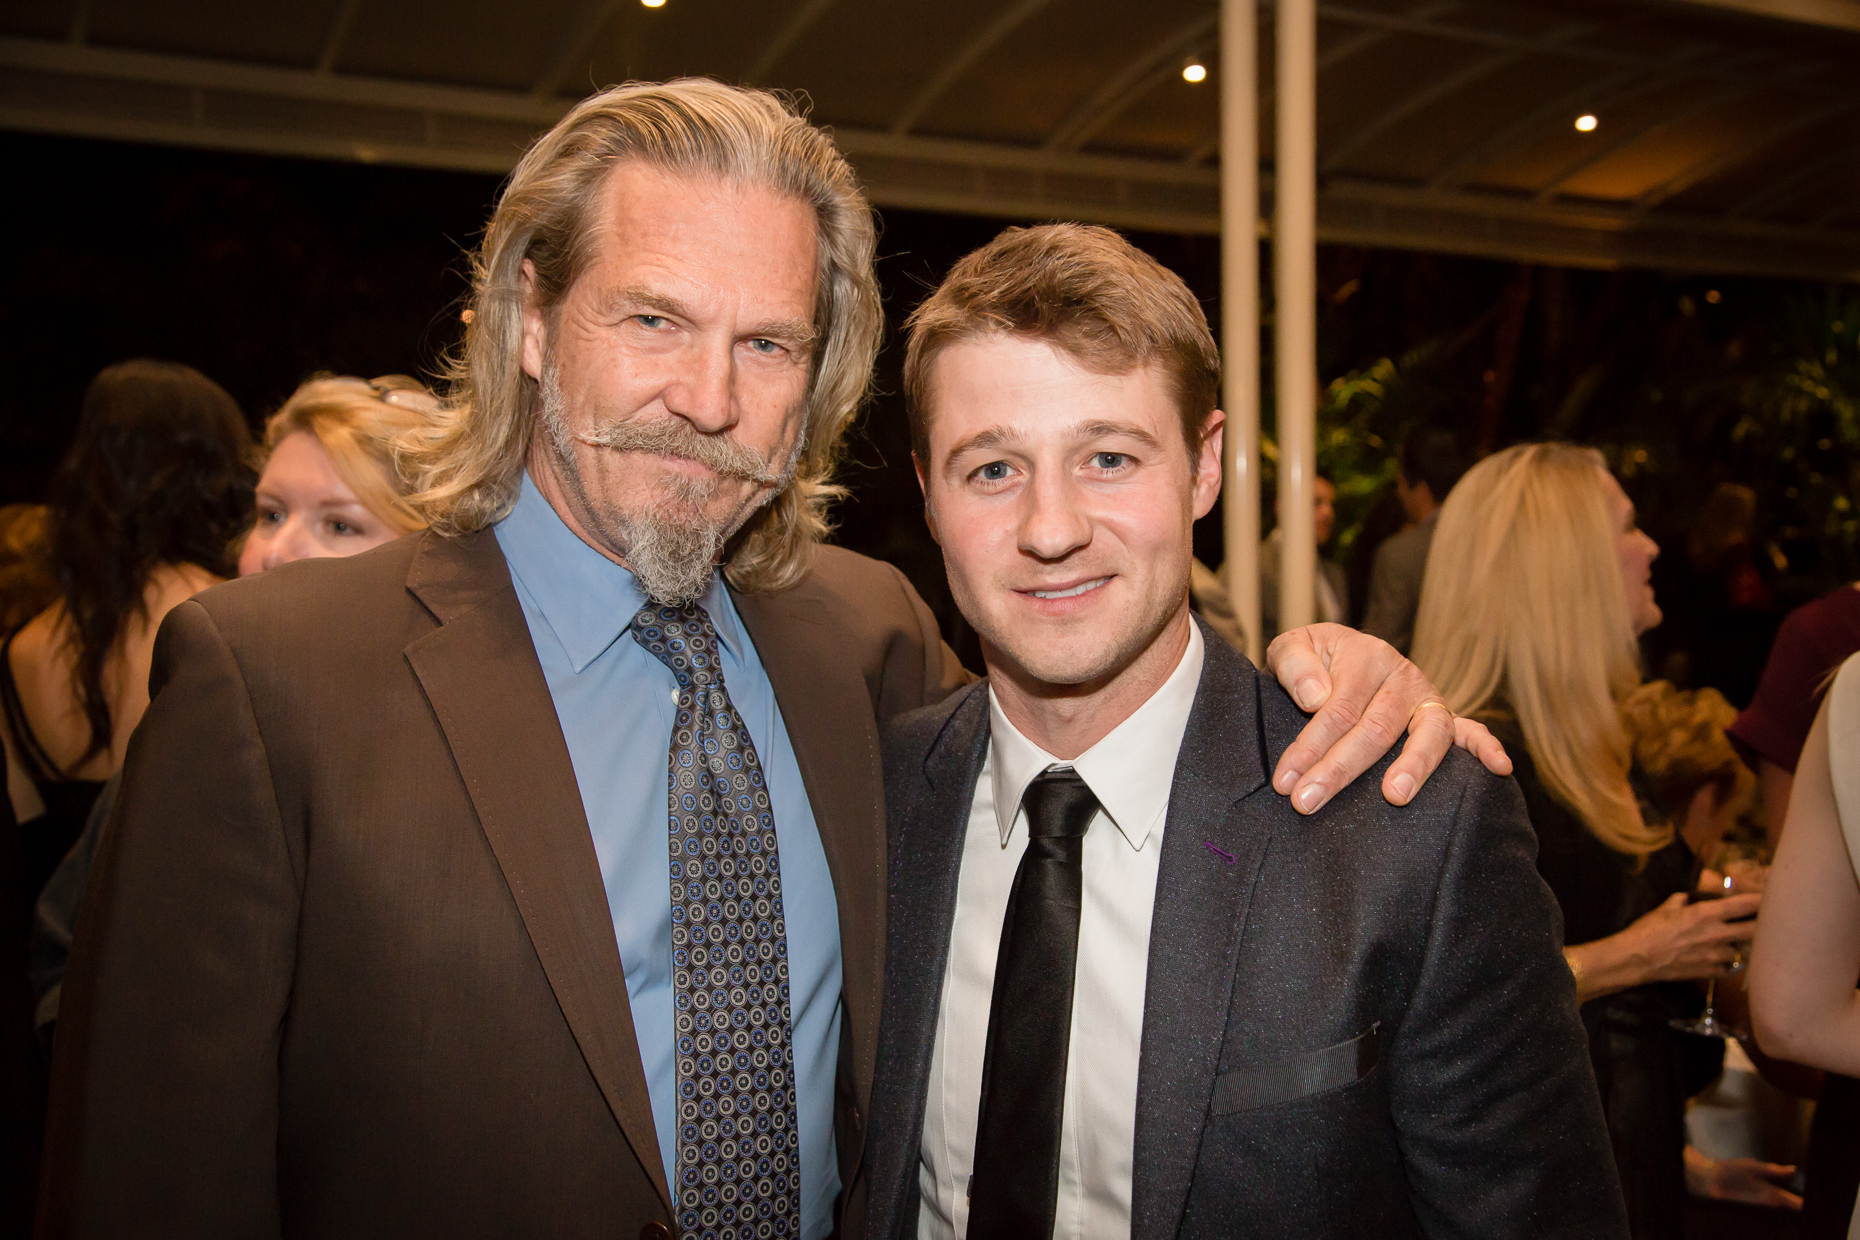 Jeff Bridges and Ben McKenzie